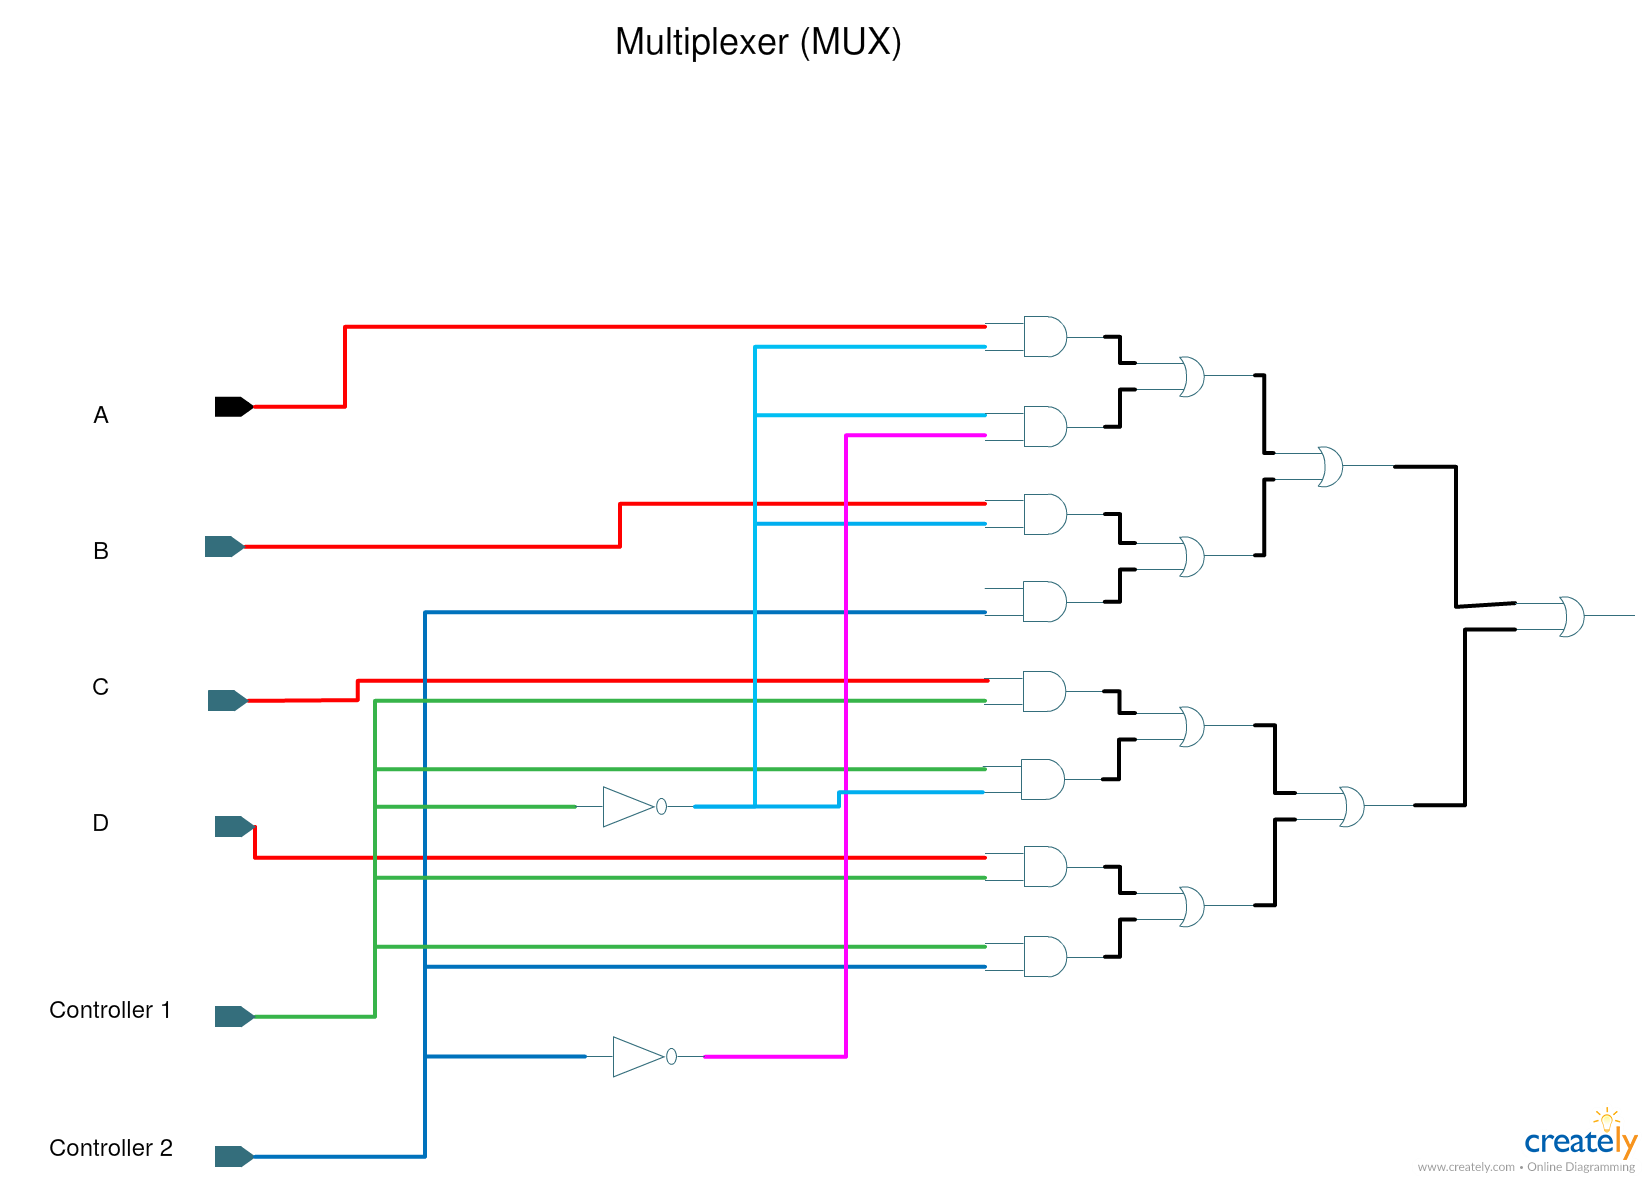 MUX Logic Gate Circuit Diagram Template #logic Circuit Diagram, Templates,  Gate, Models